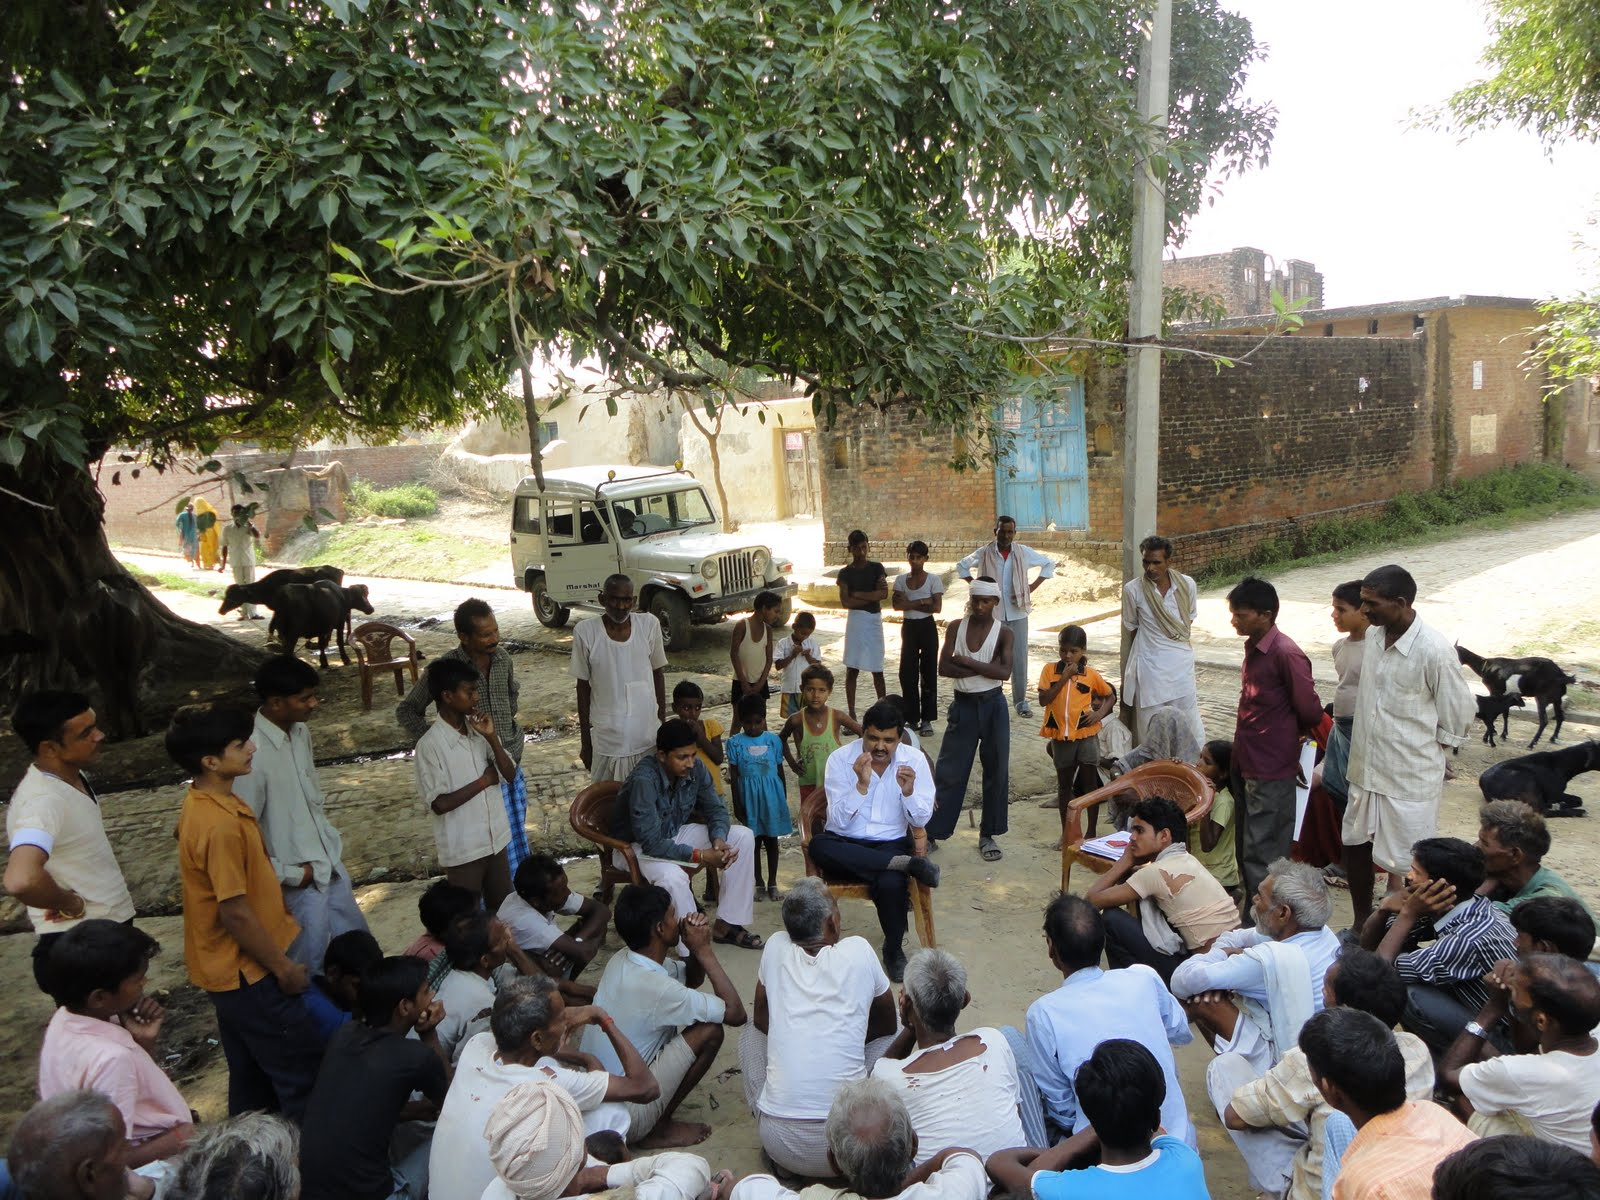 where and when does the panchayat meet